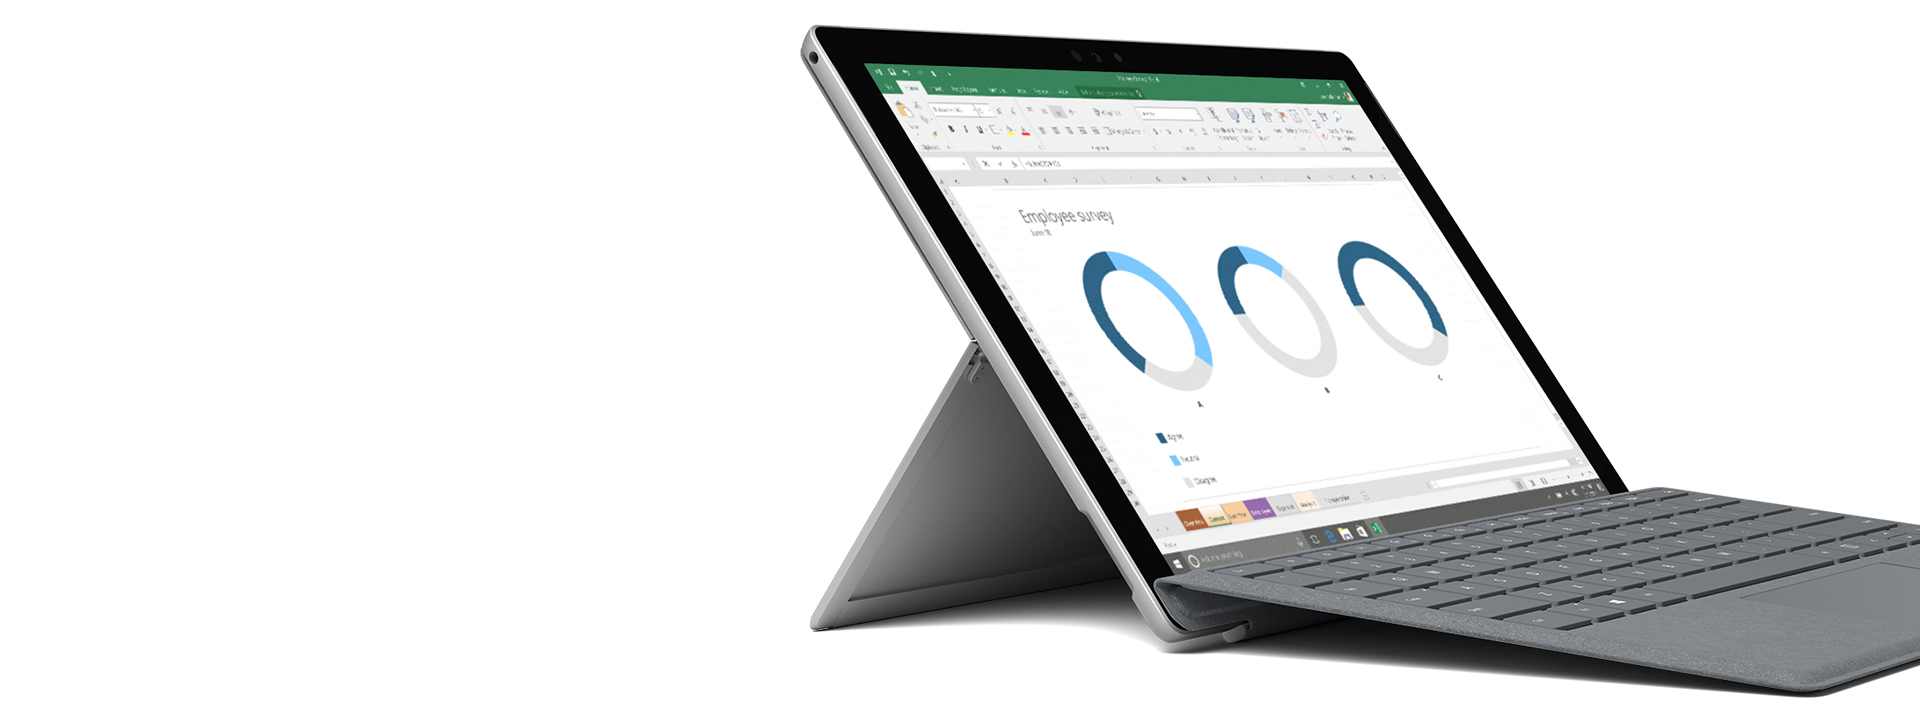 Surface device shown with Windows/Office screenshot.